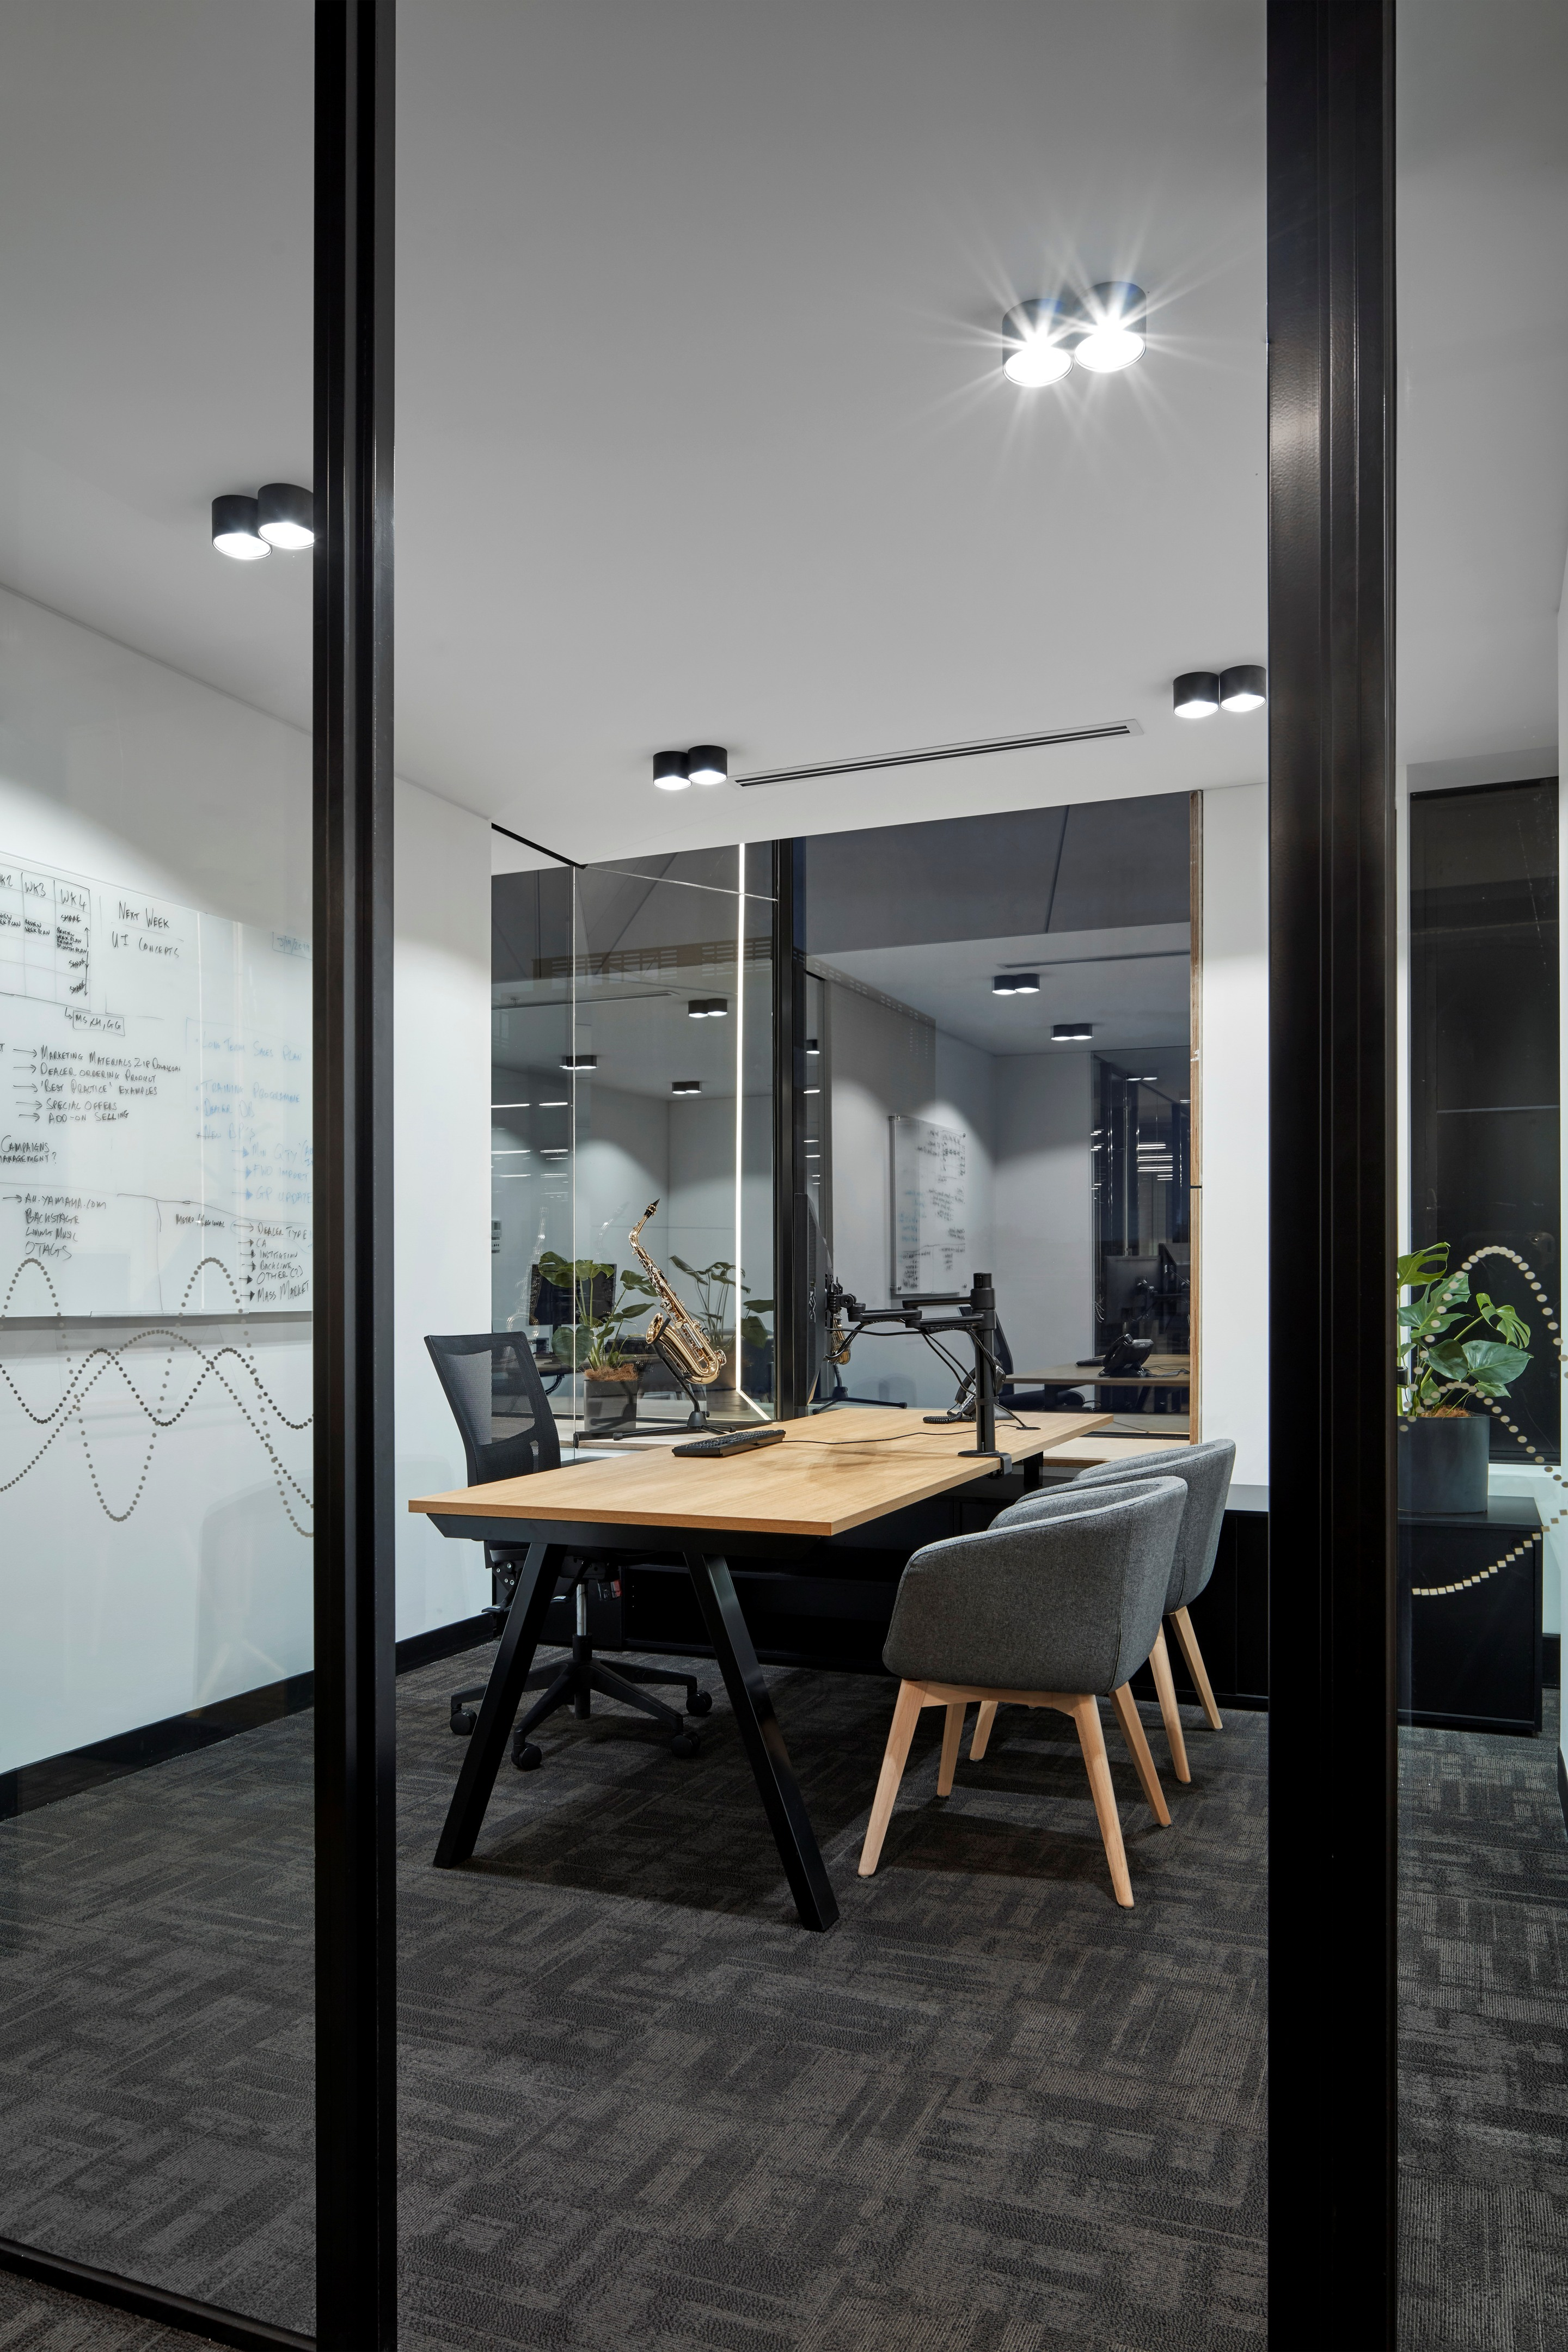 Yamaha Music Office in Melbourne, Australia by STUDIOMINT